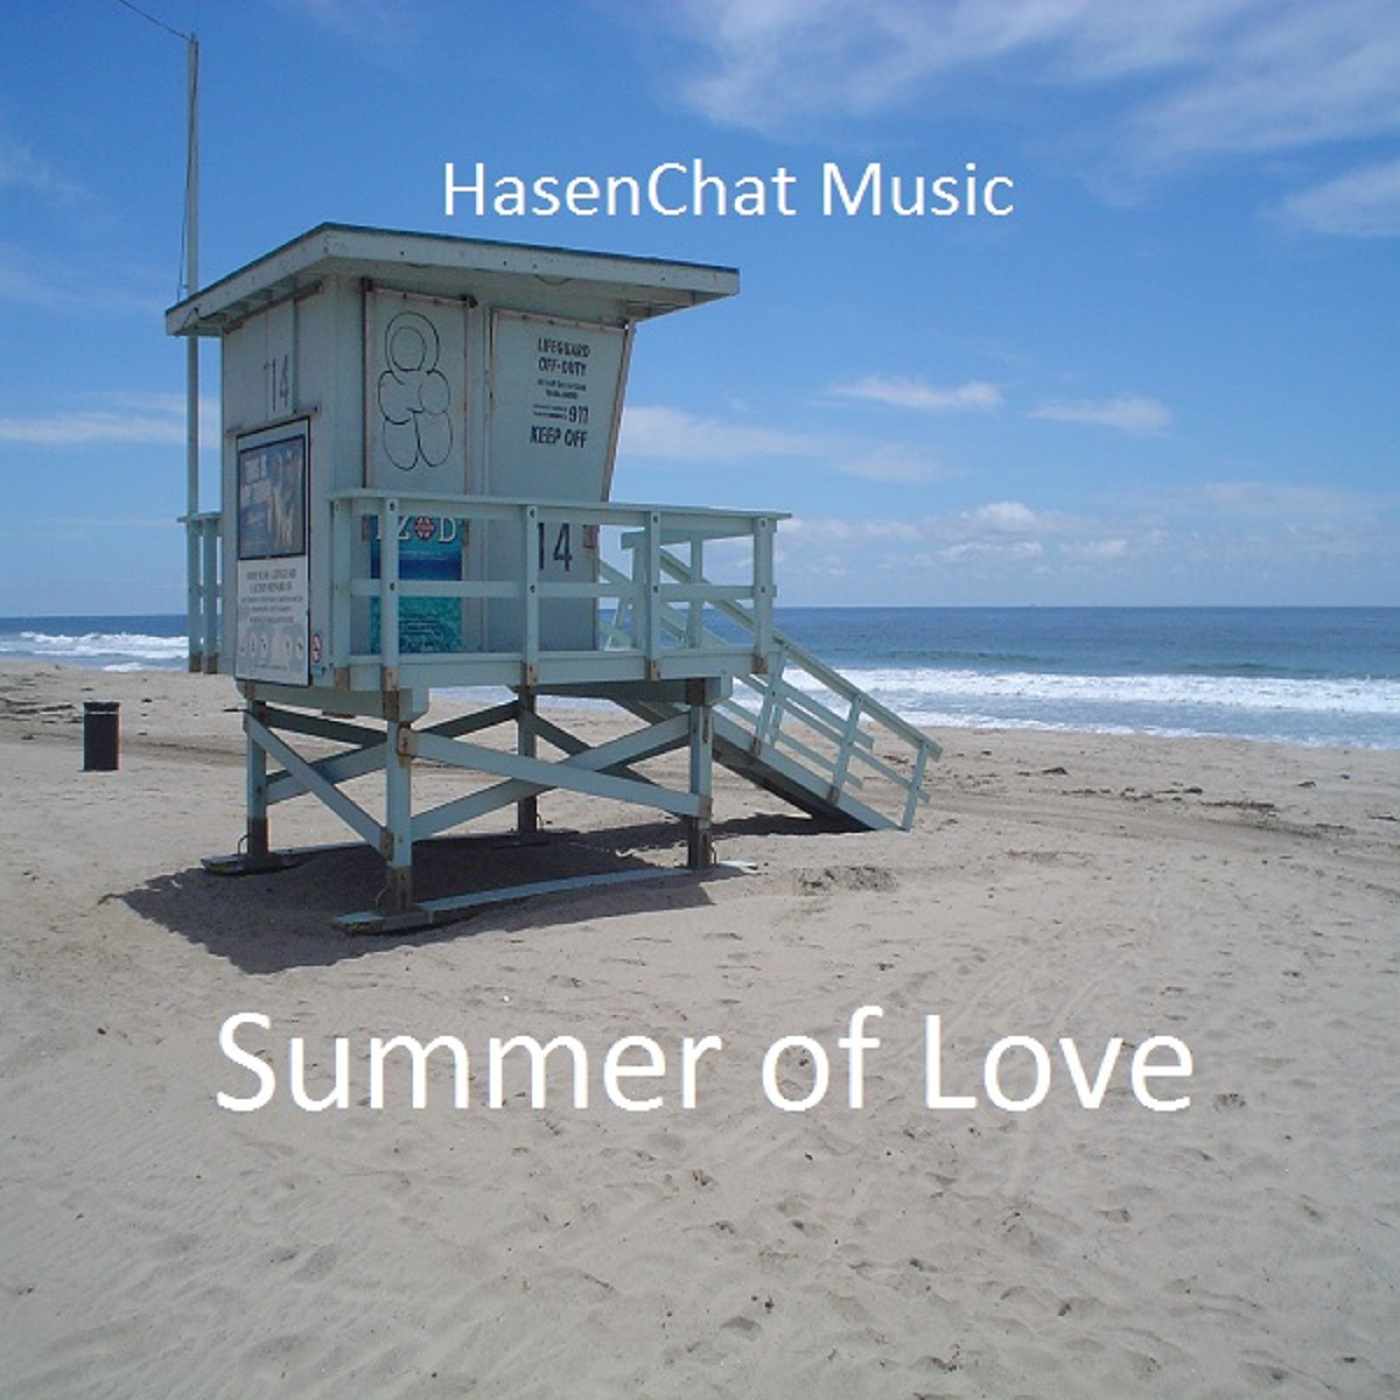 HasenChat Music - Summer of Love